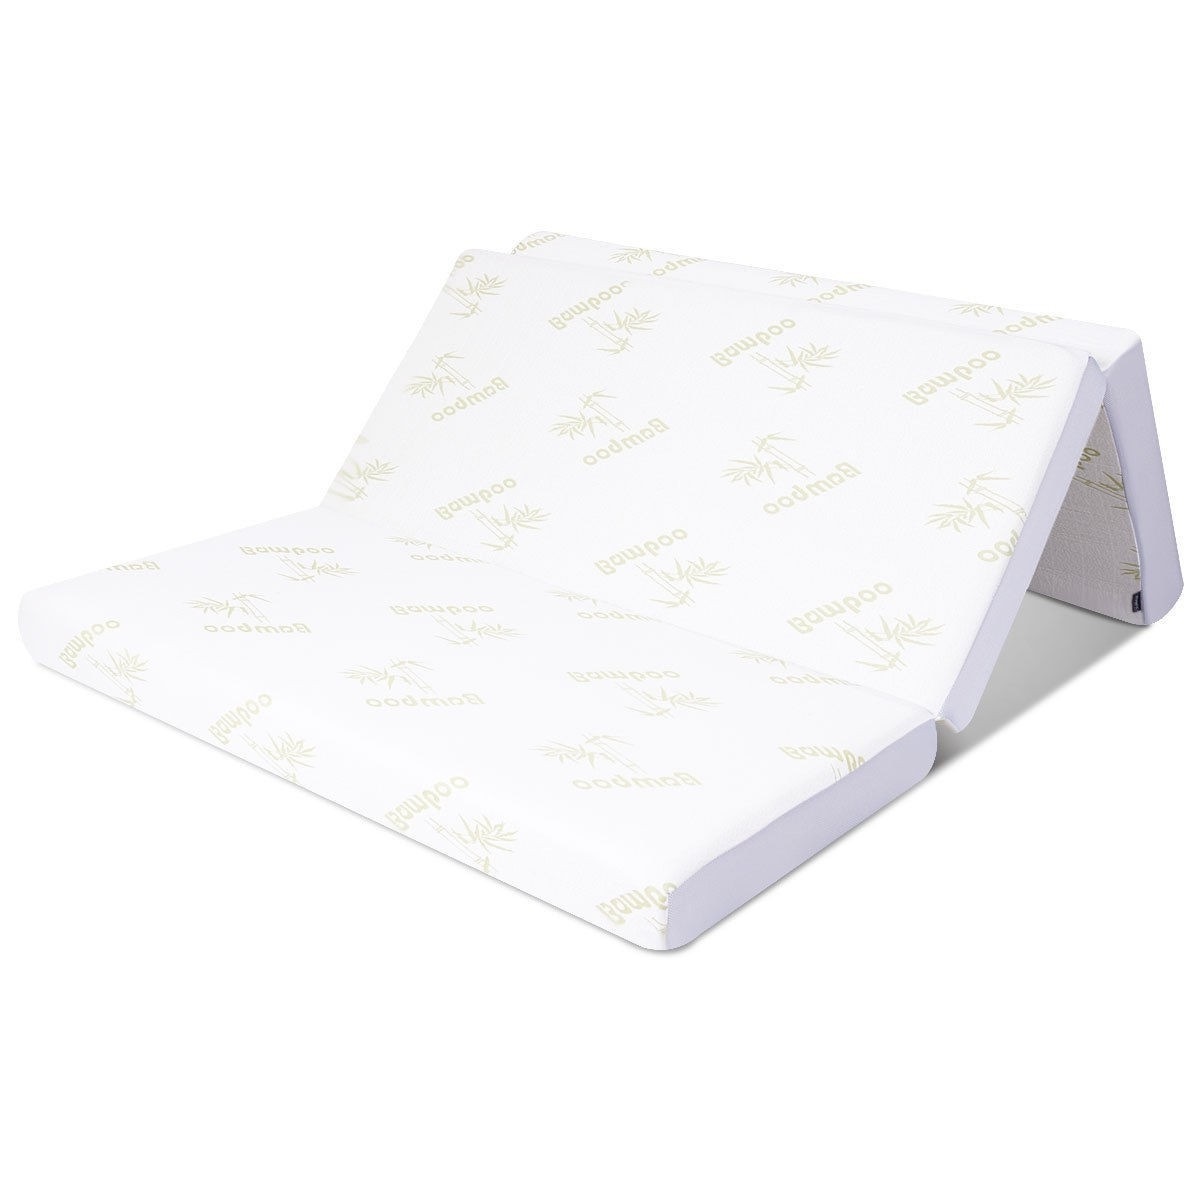 Foldable Foam Mattress Queen Size 6 Inch Folding Memory Foam Mattress With Washable Cover